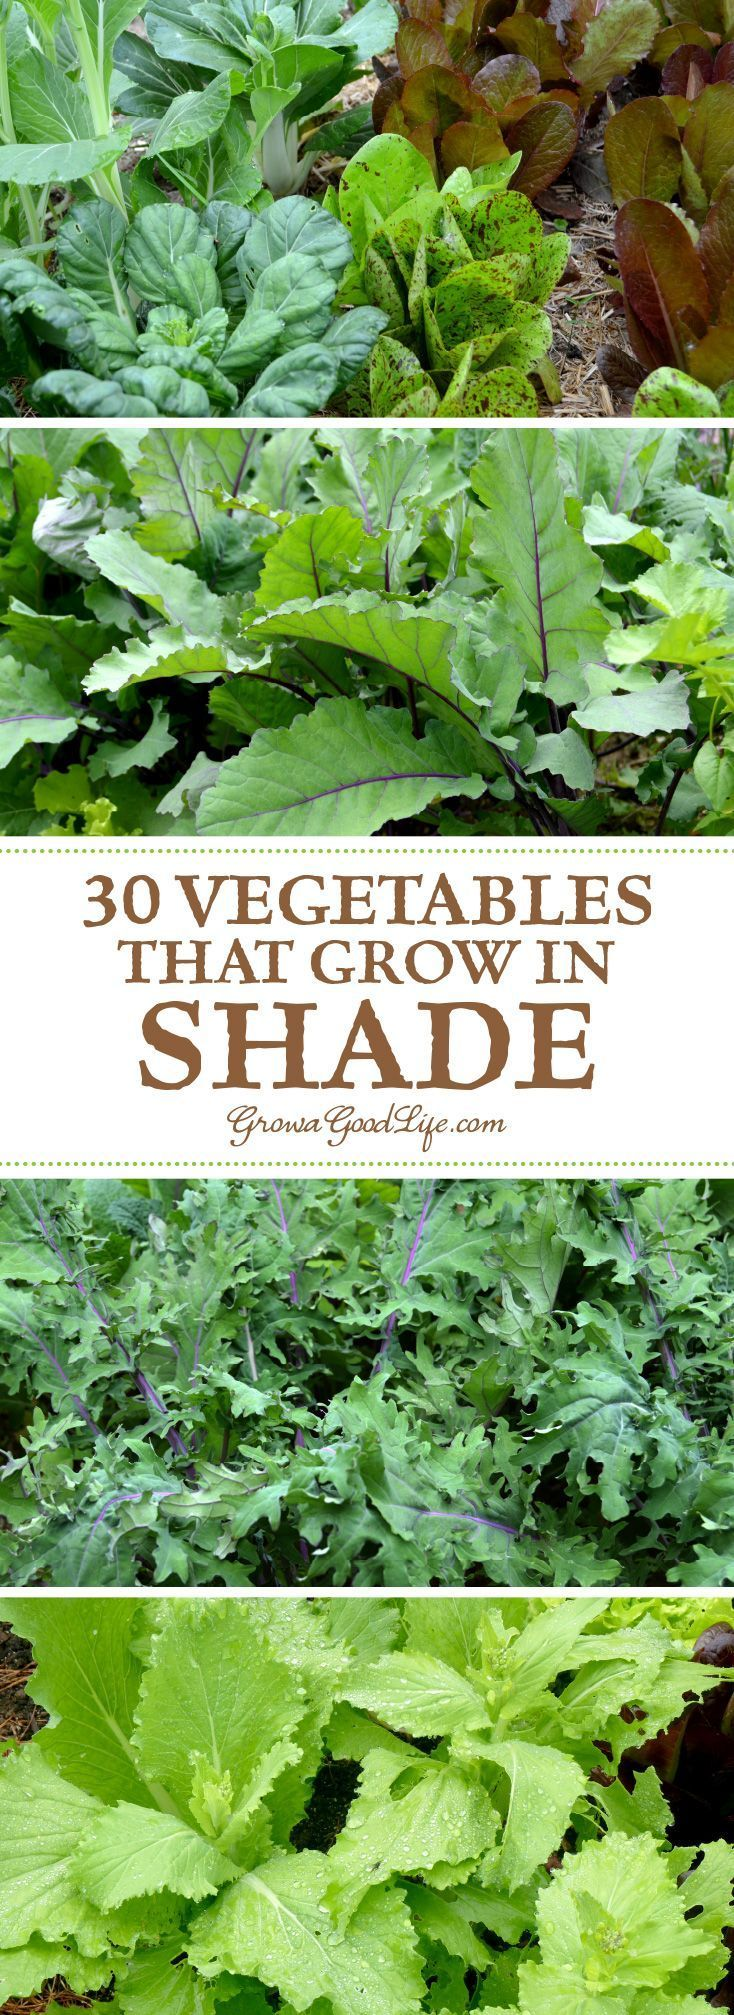 Vegetable Garden Ideas For Shaded Areas 221 best vegetable garden ideas images on pinterest | garden ideas